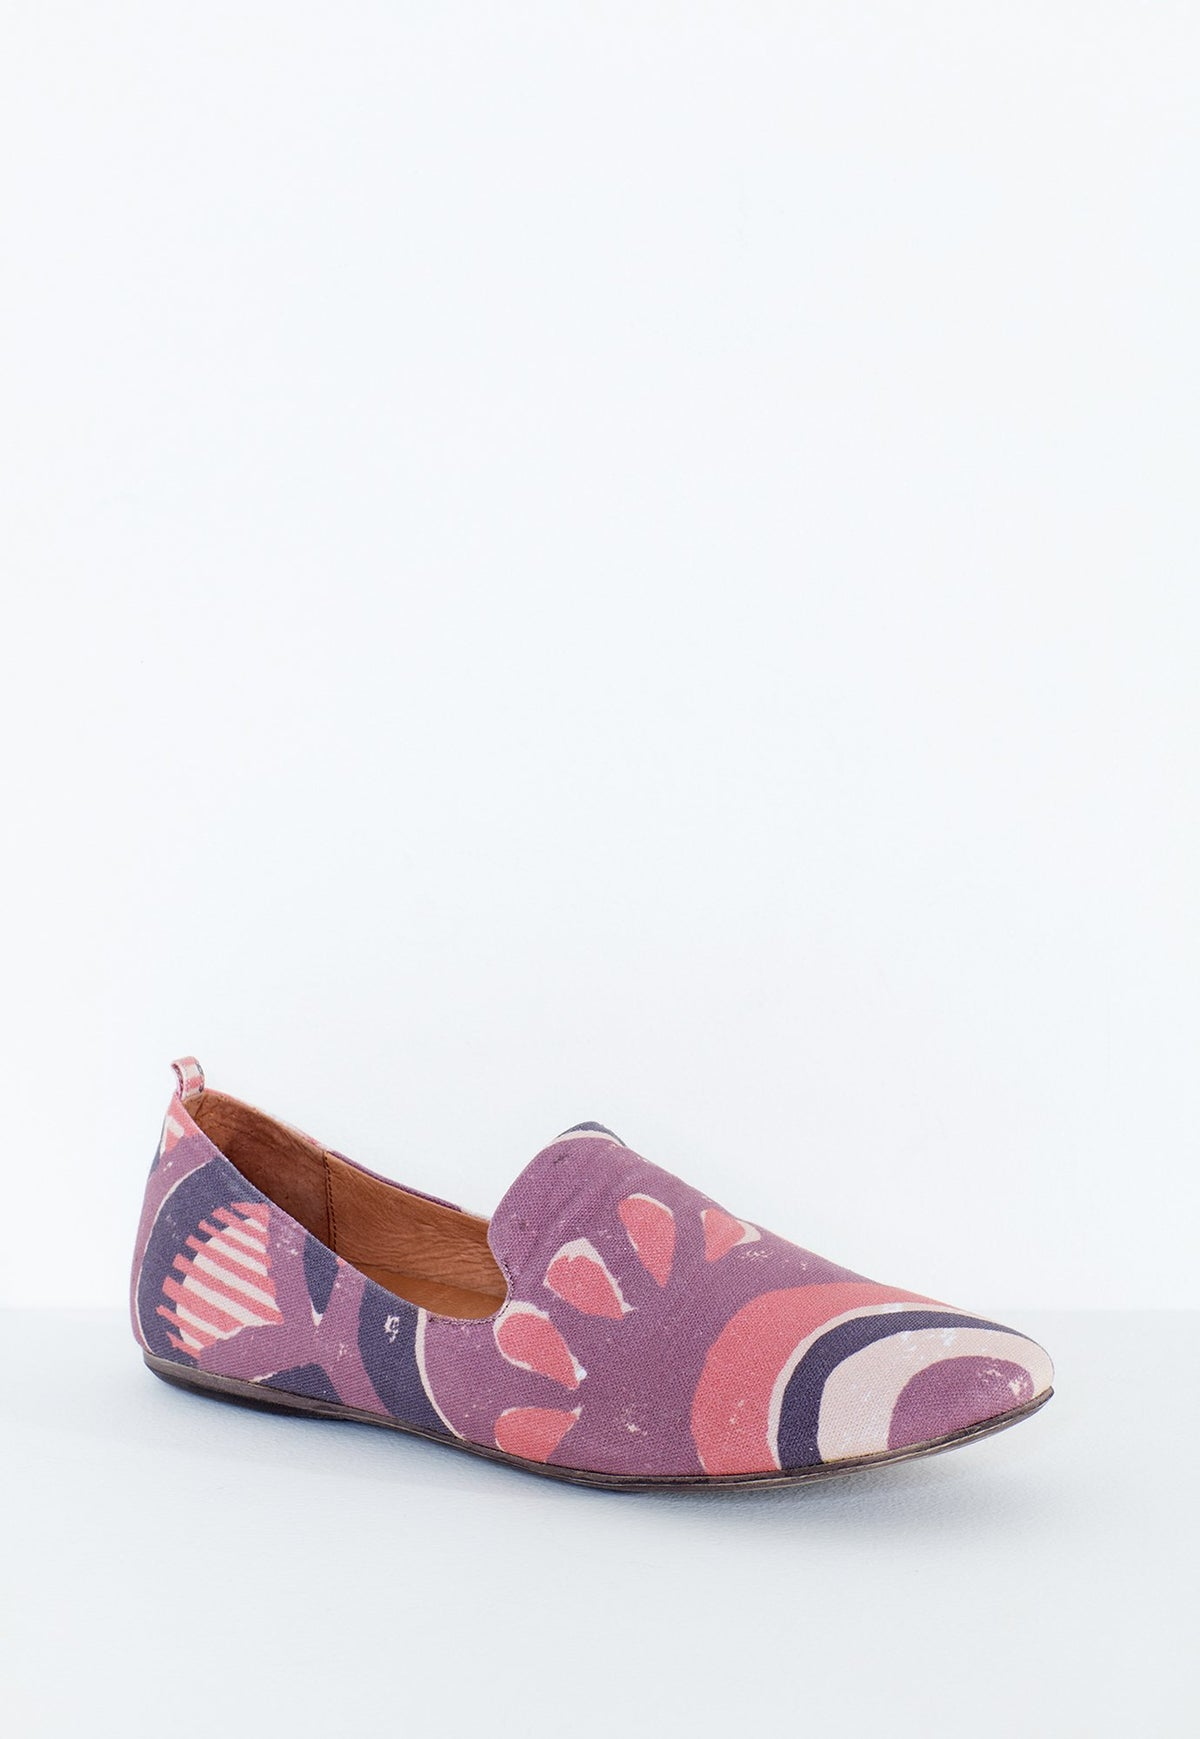 Sky Loafers - Printed Canvas